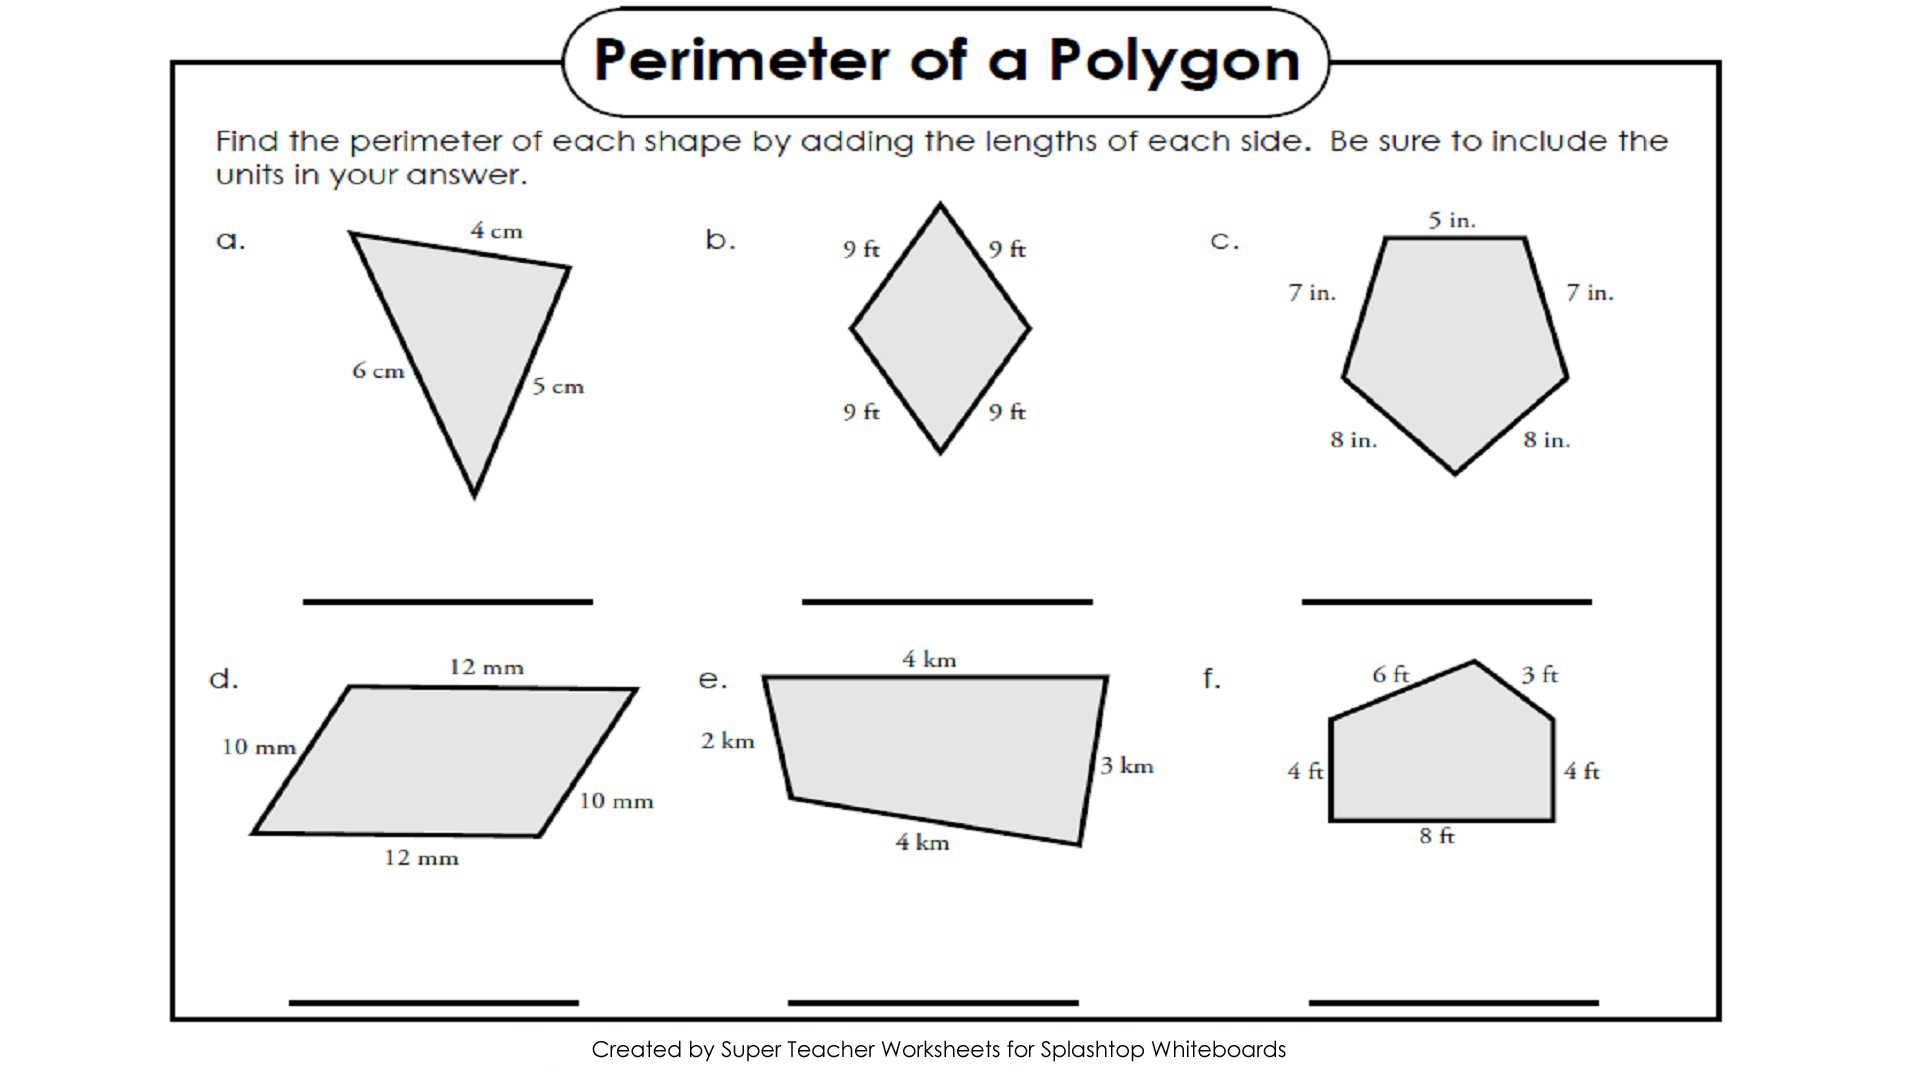 worksheet Polygon Worksheets perimeter of irregular polygons worksheet abitlikethis find the perimeters polygon shapes